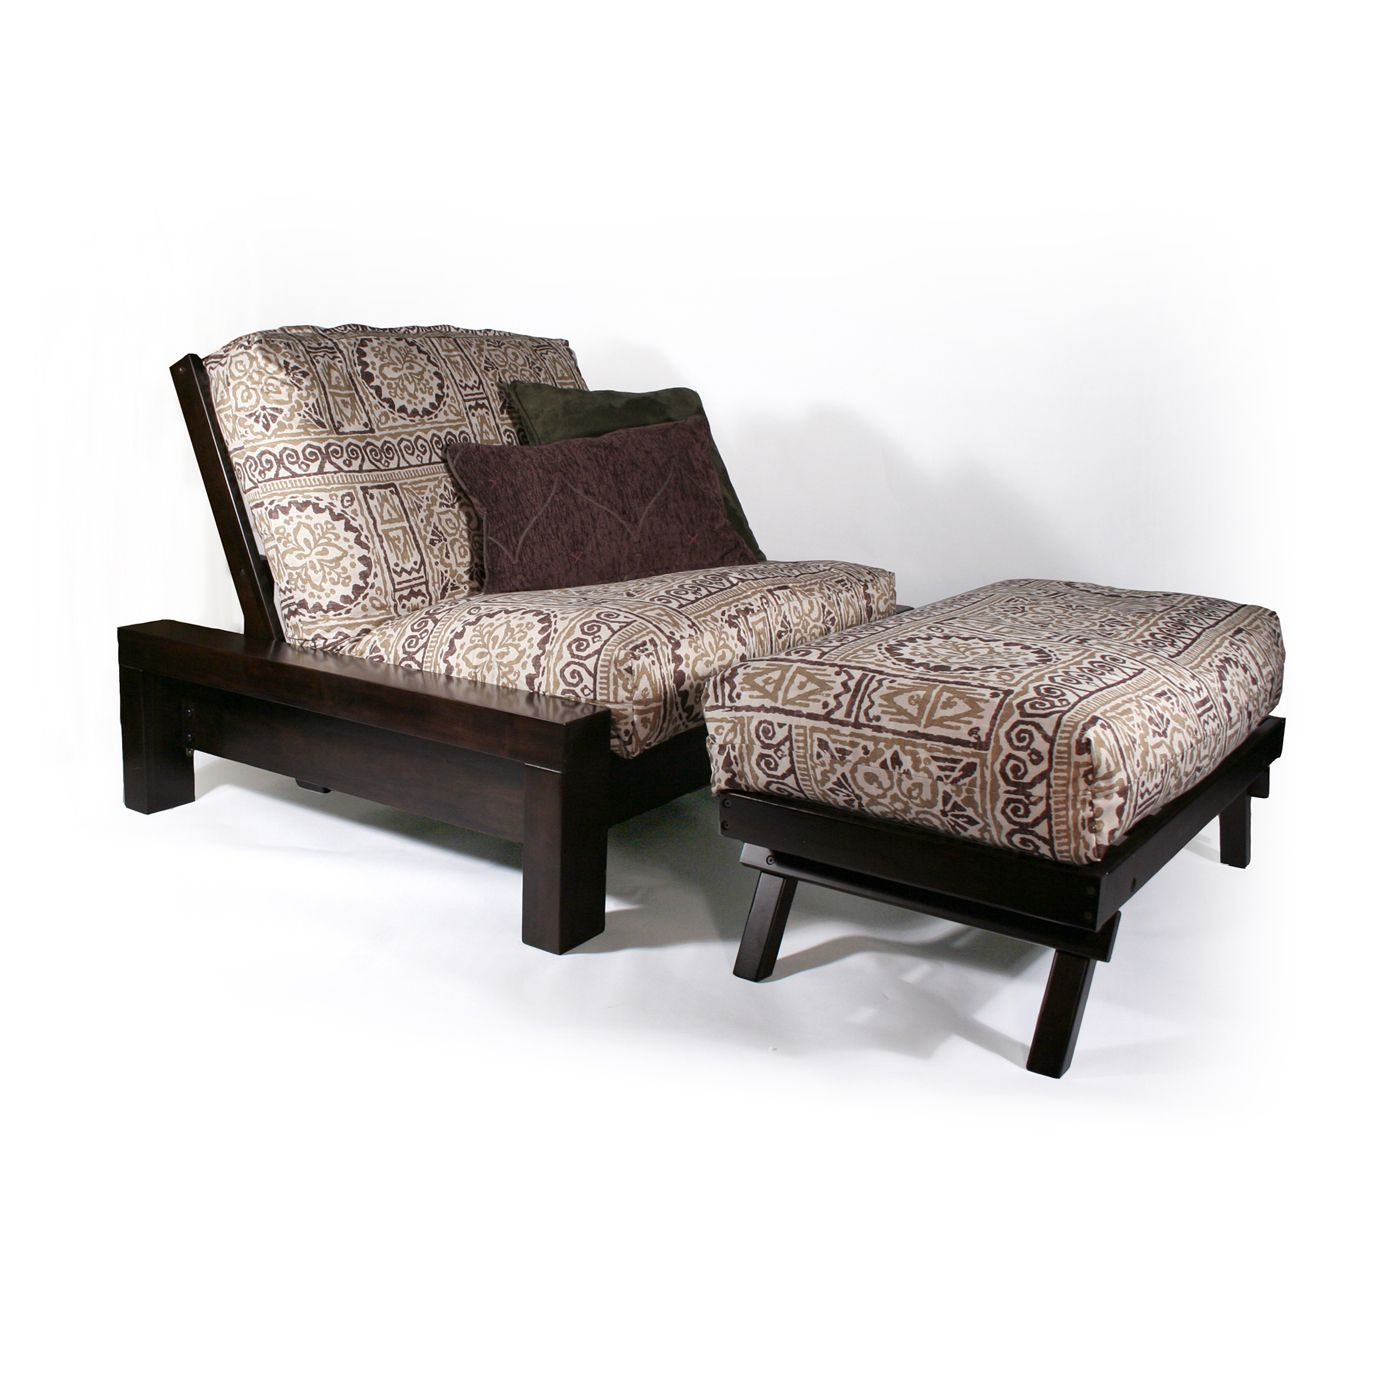 Prime Strata Furniture Carriage Rockwell Chair And Ottoman Futon Alphanode Cool Chair Designs And Ideas Alphanodeonline